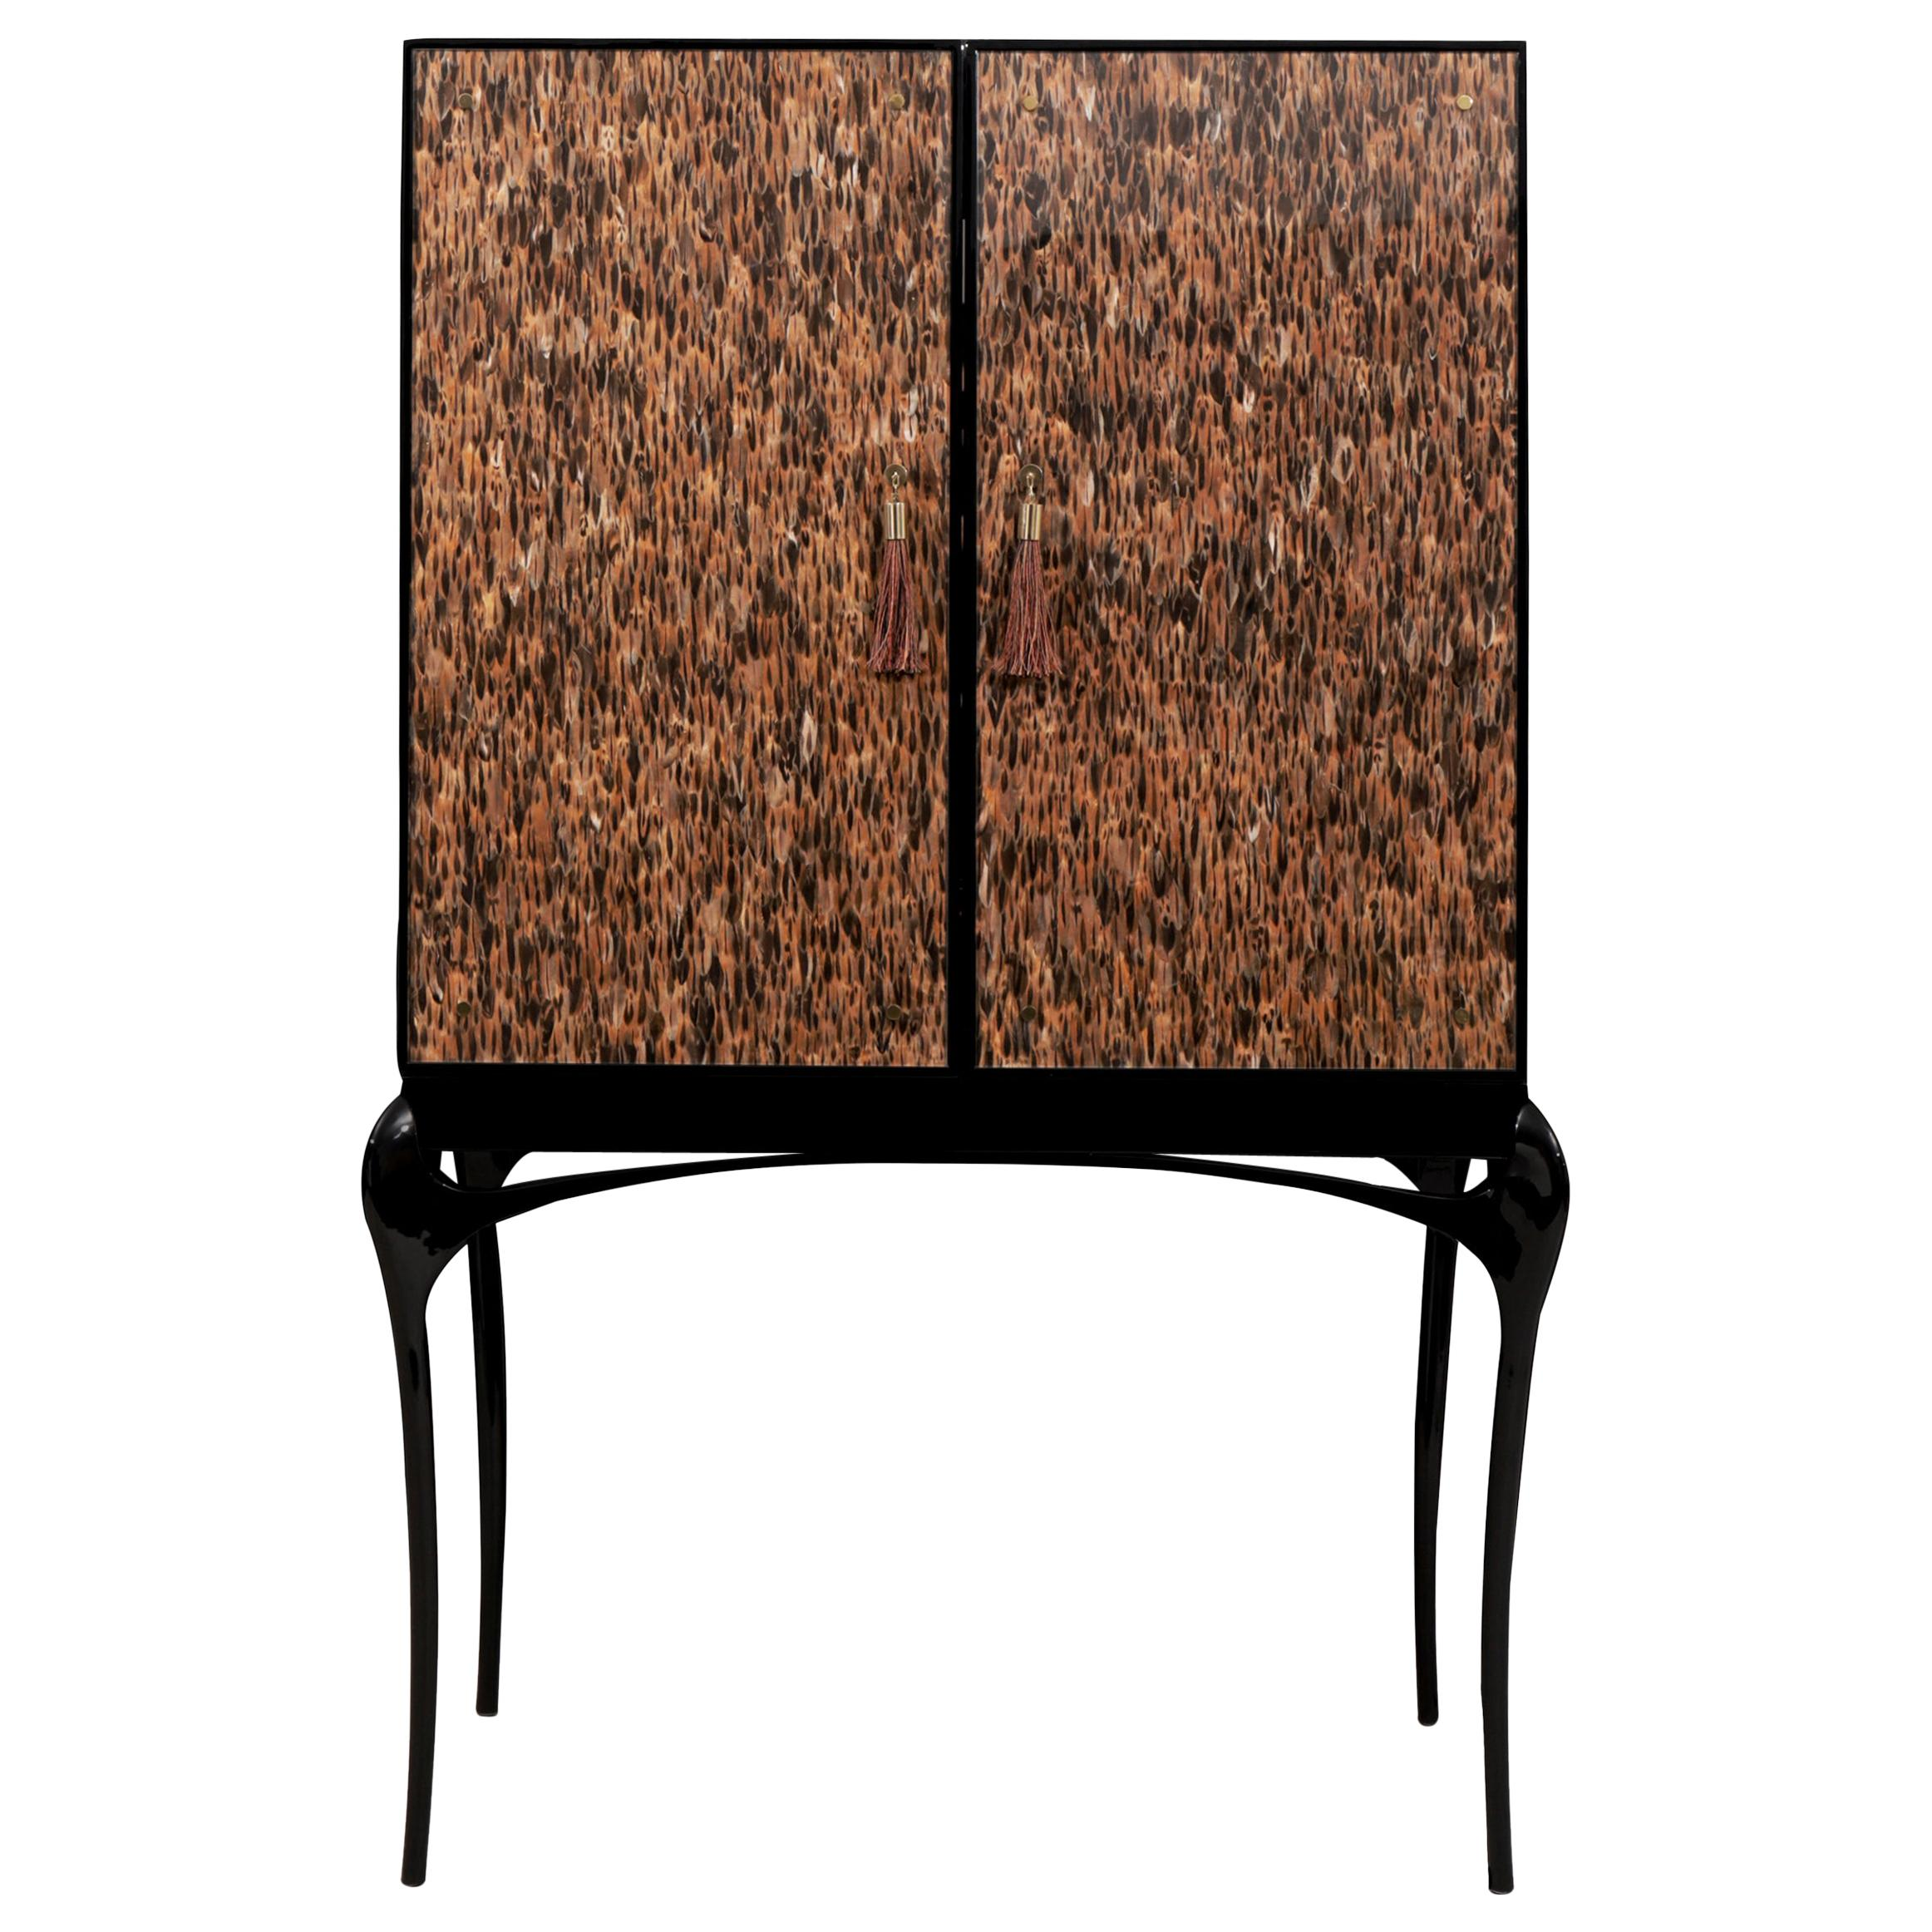 Temptation Bar Cabinet in Black lacquer with high gloss finish